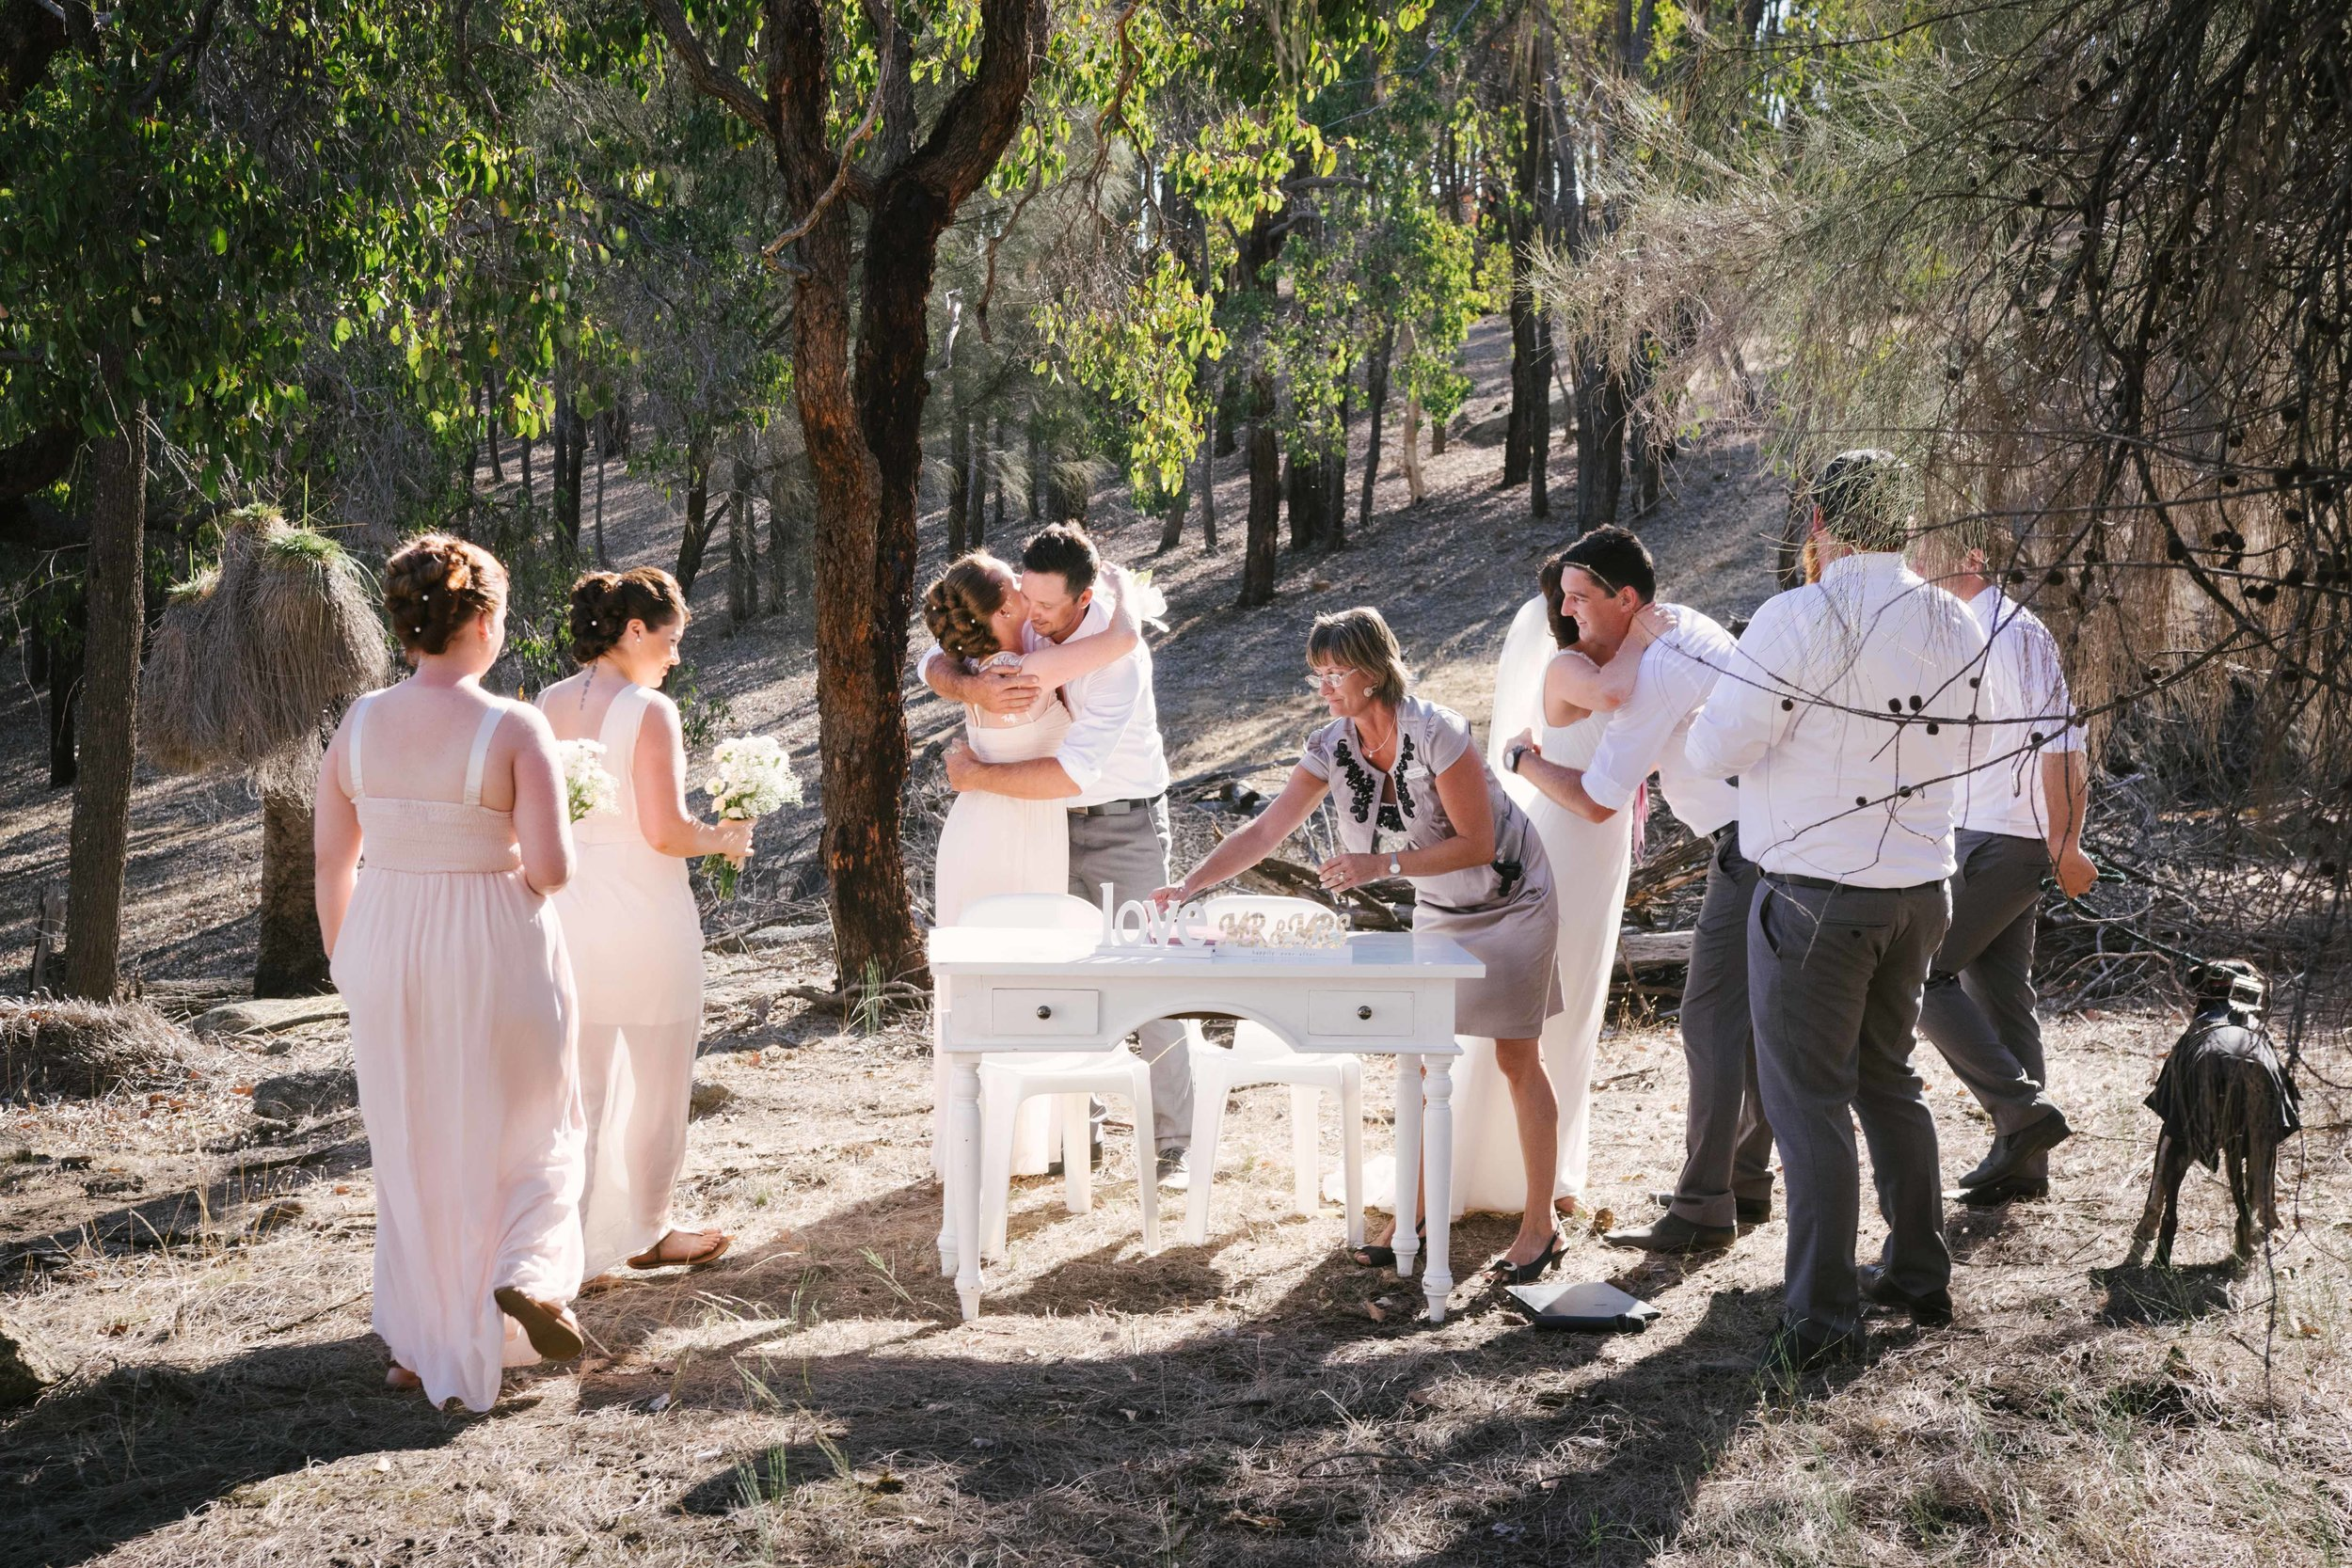 Rustc Rural Farm Wheatbelt Country Wedding Photographer Photography Candid Documentary (16).jpg